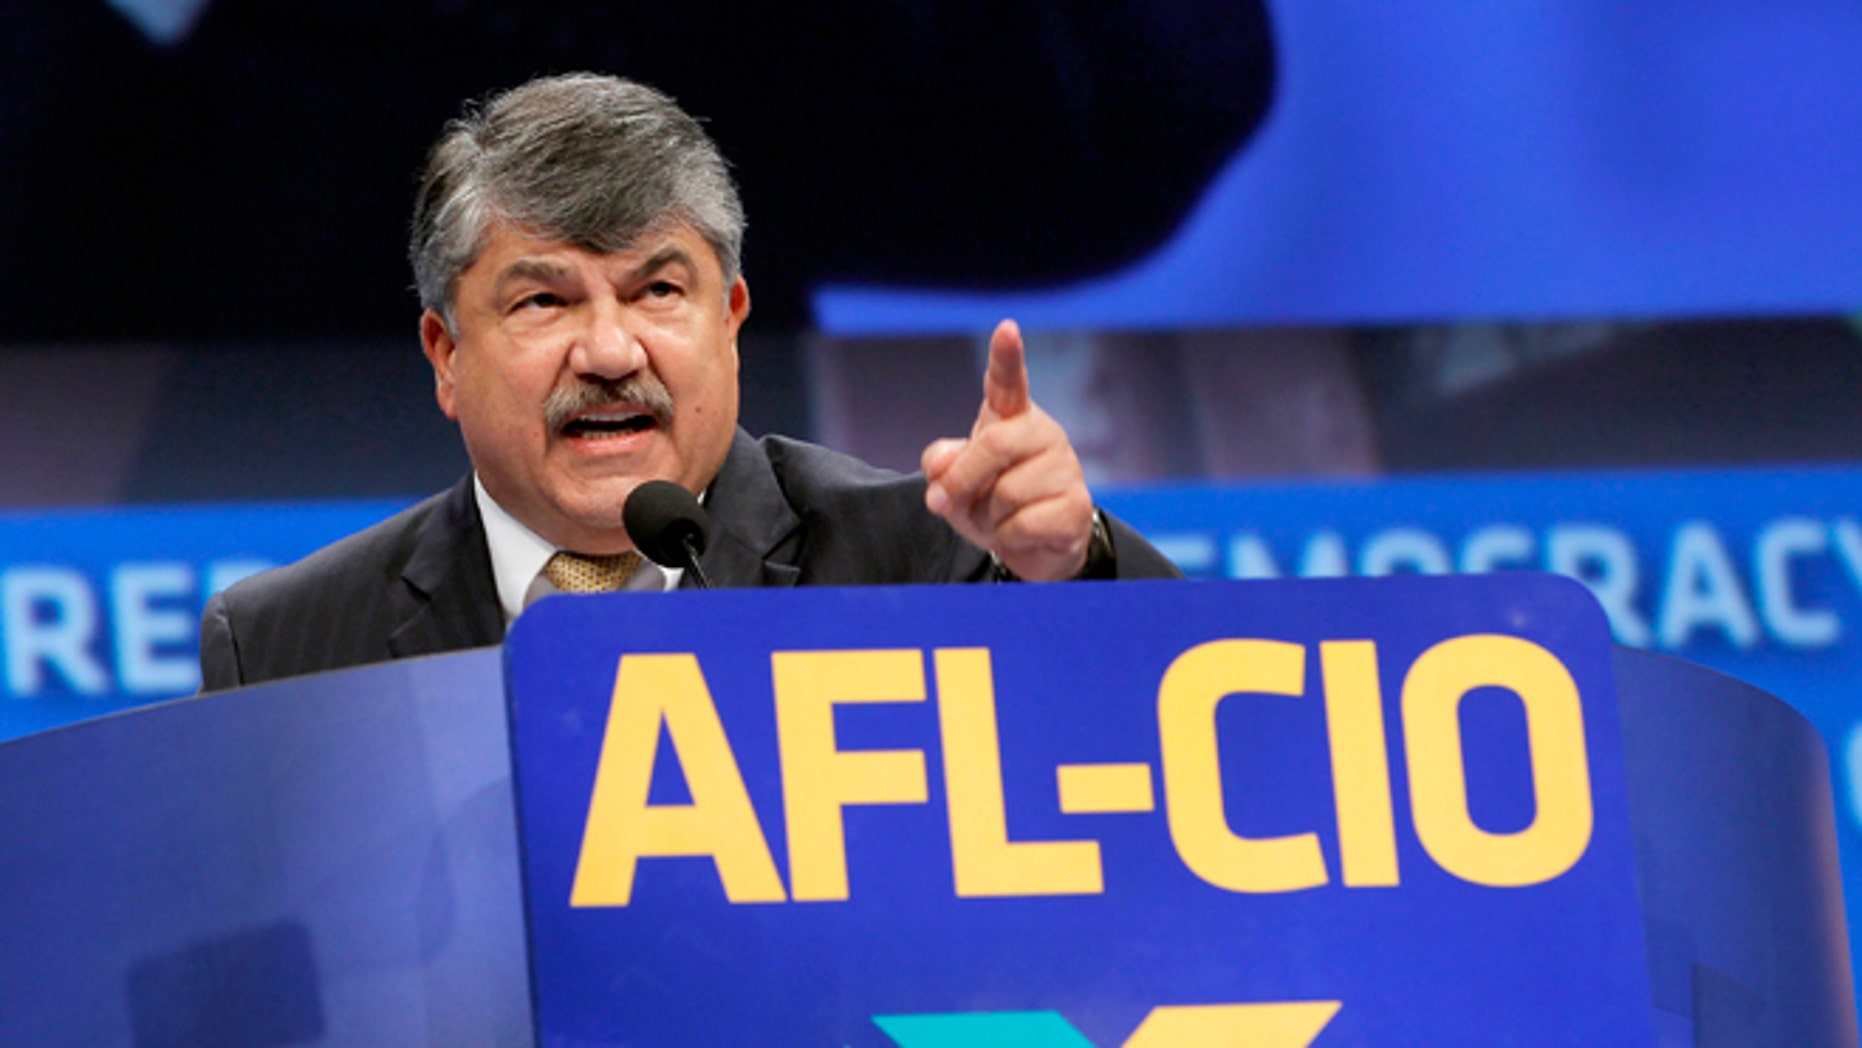 Sept. 9, 2013: Richard Trumka, American Federation of Labor and Congress of Industrial Organizations president, addresses members during the quadrennial AFL-CIO convention at Los Angeles Convention Center.